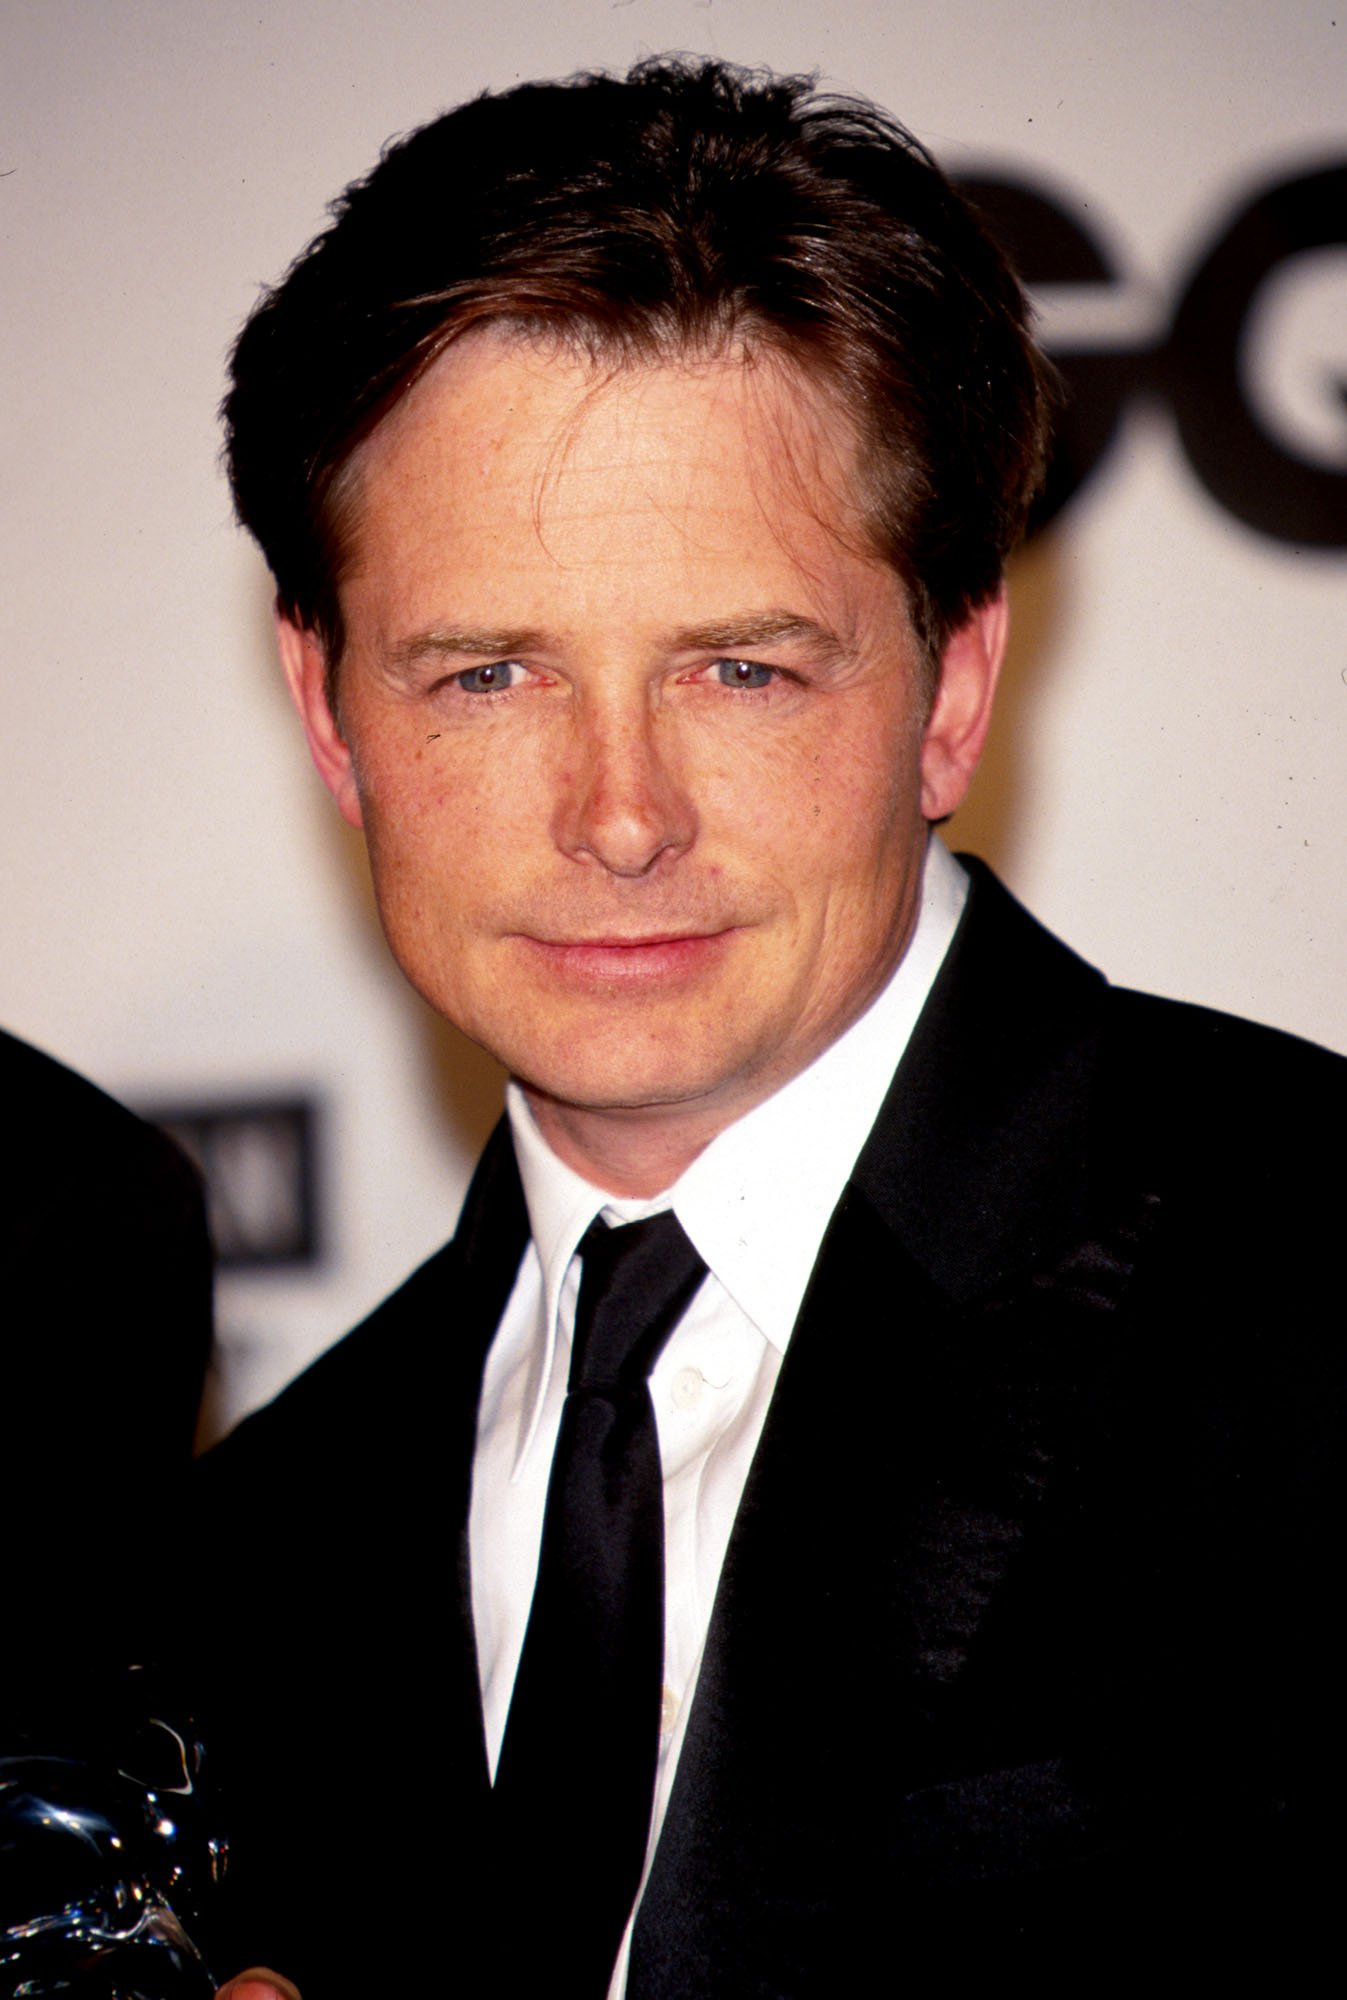 """Michael J. Fox at the GQ Magazine's 4th Annual """"Men of the Year"""" Awards, October 21, 1999, NYC, New York. 